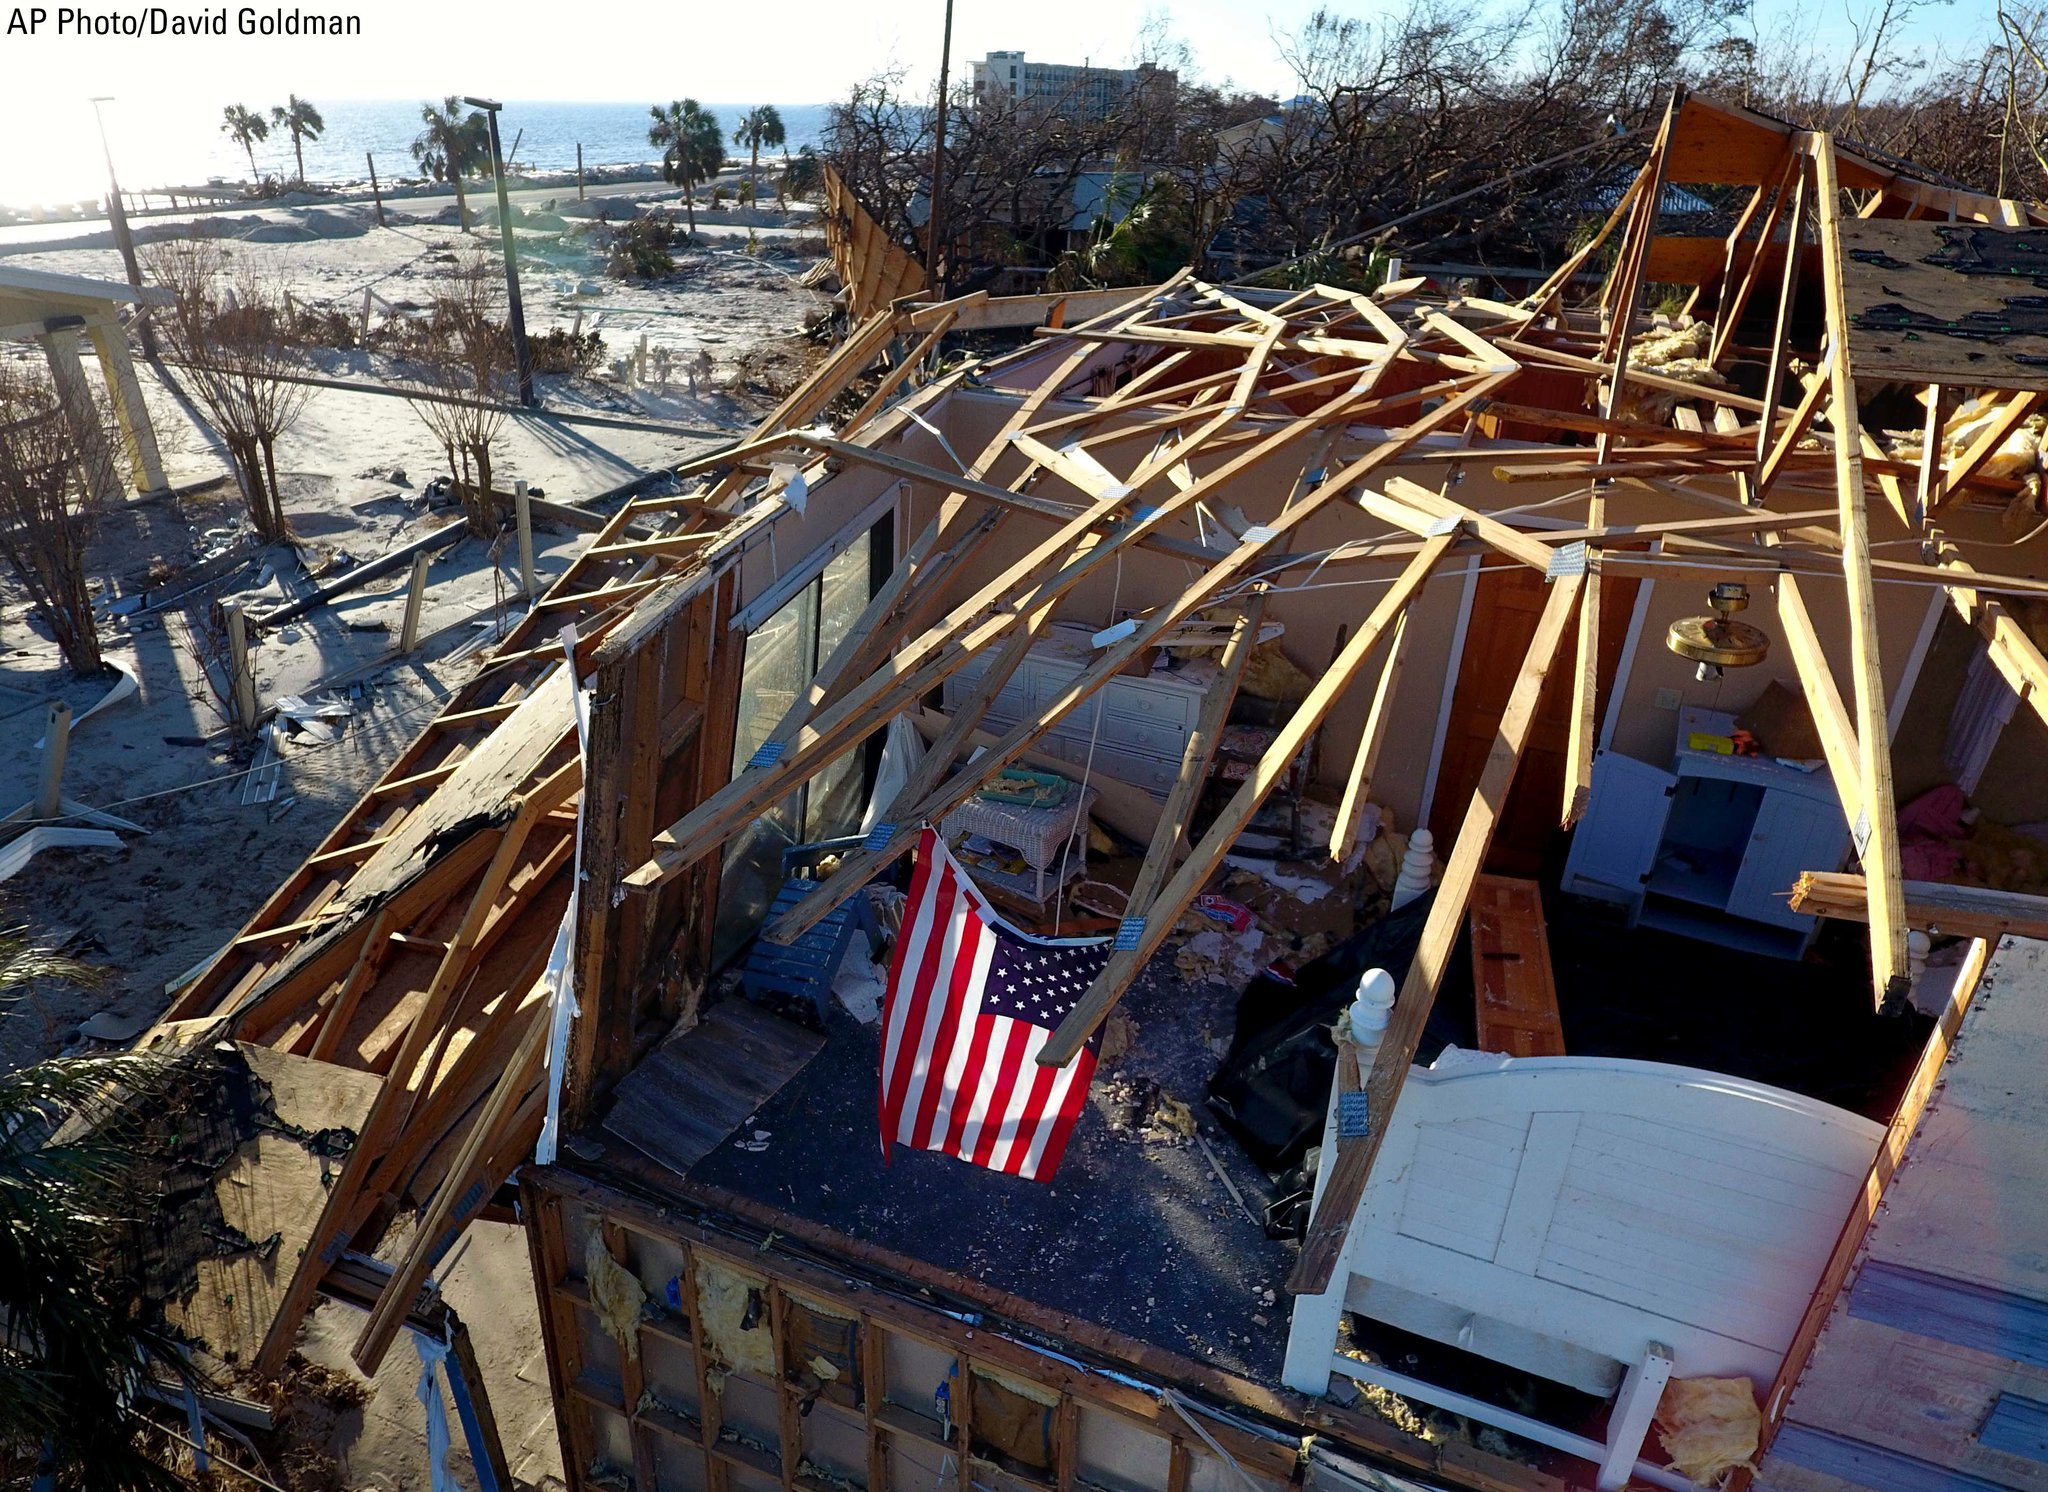 An American flag hangs in a bedroom of a damaged home from Hurricane Michael in Mexico Beach, Florida. https://t.co/XpKoqznGF8